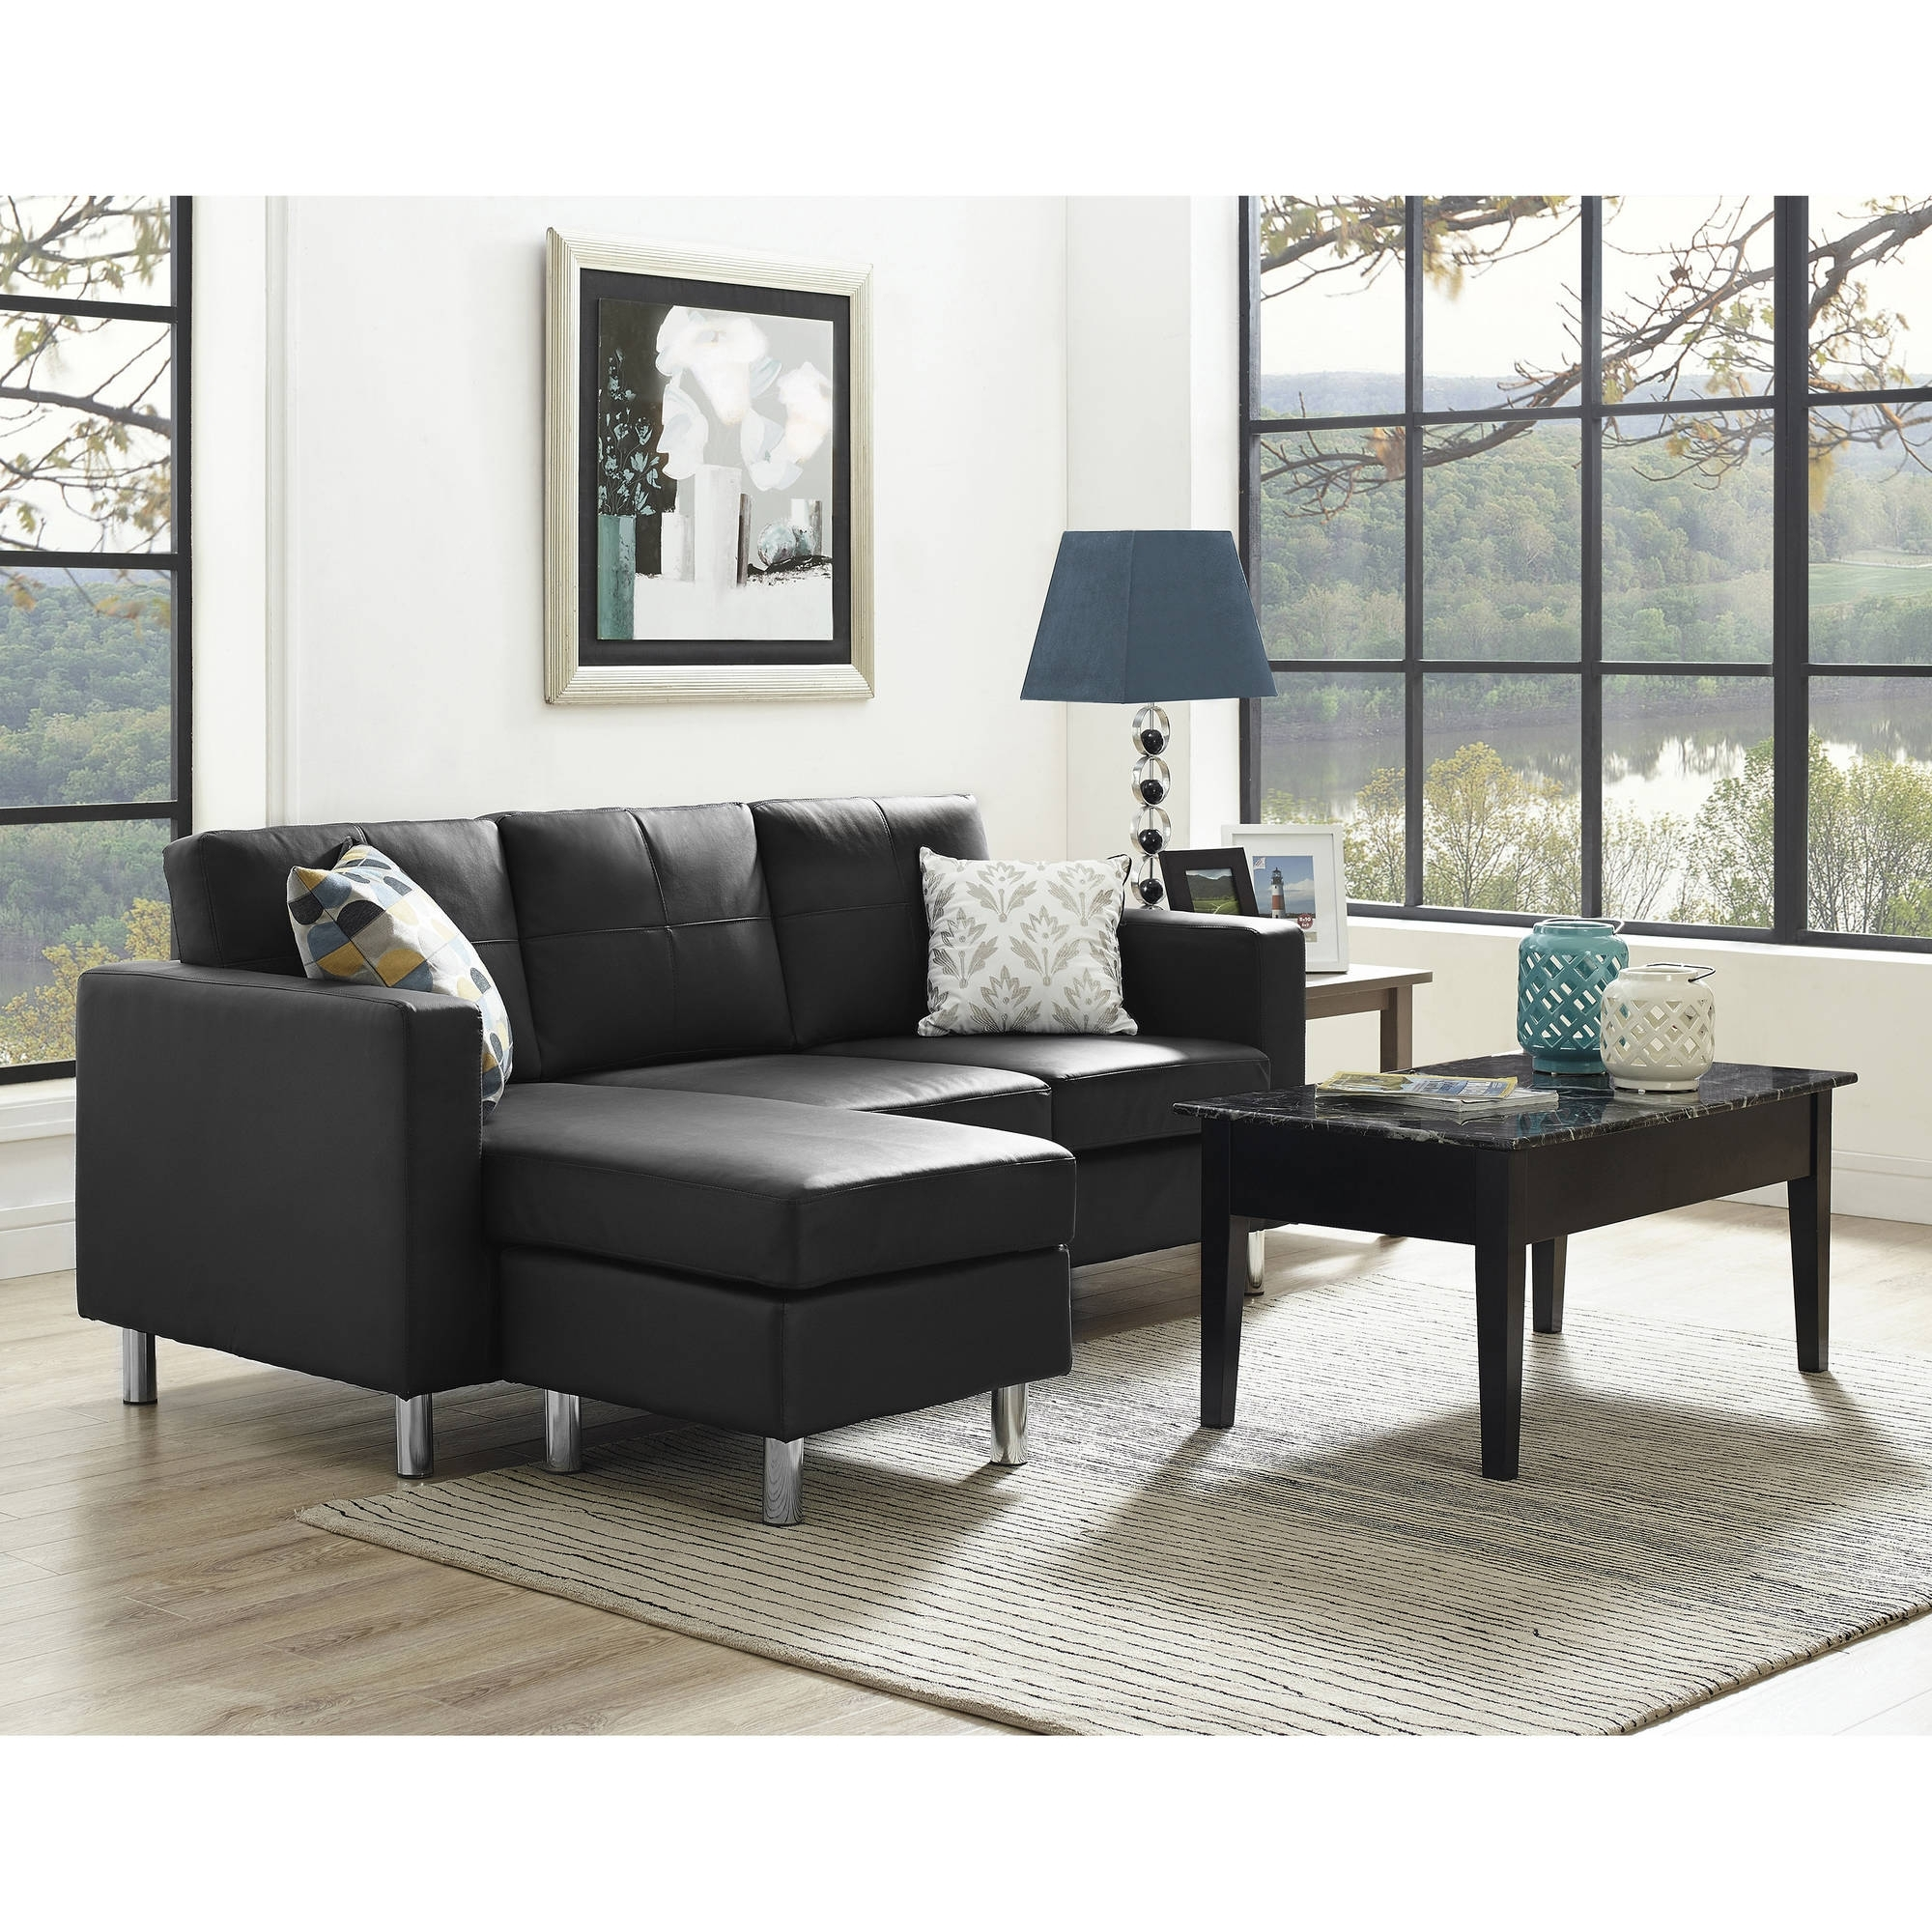 Dorel Living Small Spaces Configurable Sectional Sofa, Multiple Regarding Small Sectional Sofas With Chaise And Ottoman (View 3 of 15)